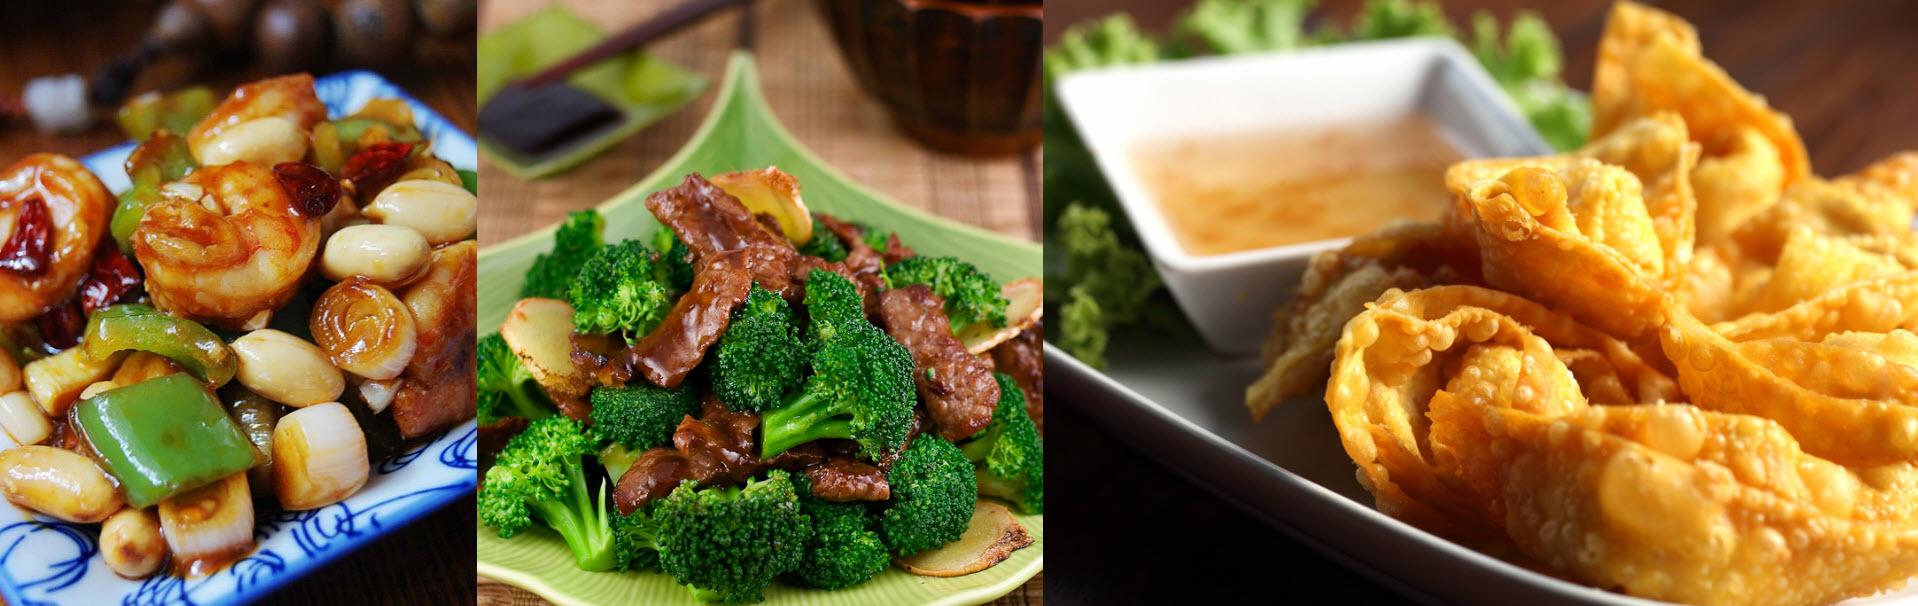 great wall chinese restaurant order online frederick md spring ridge parkway - China Garden Frederick Md